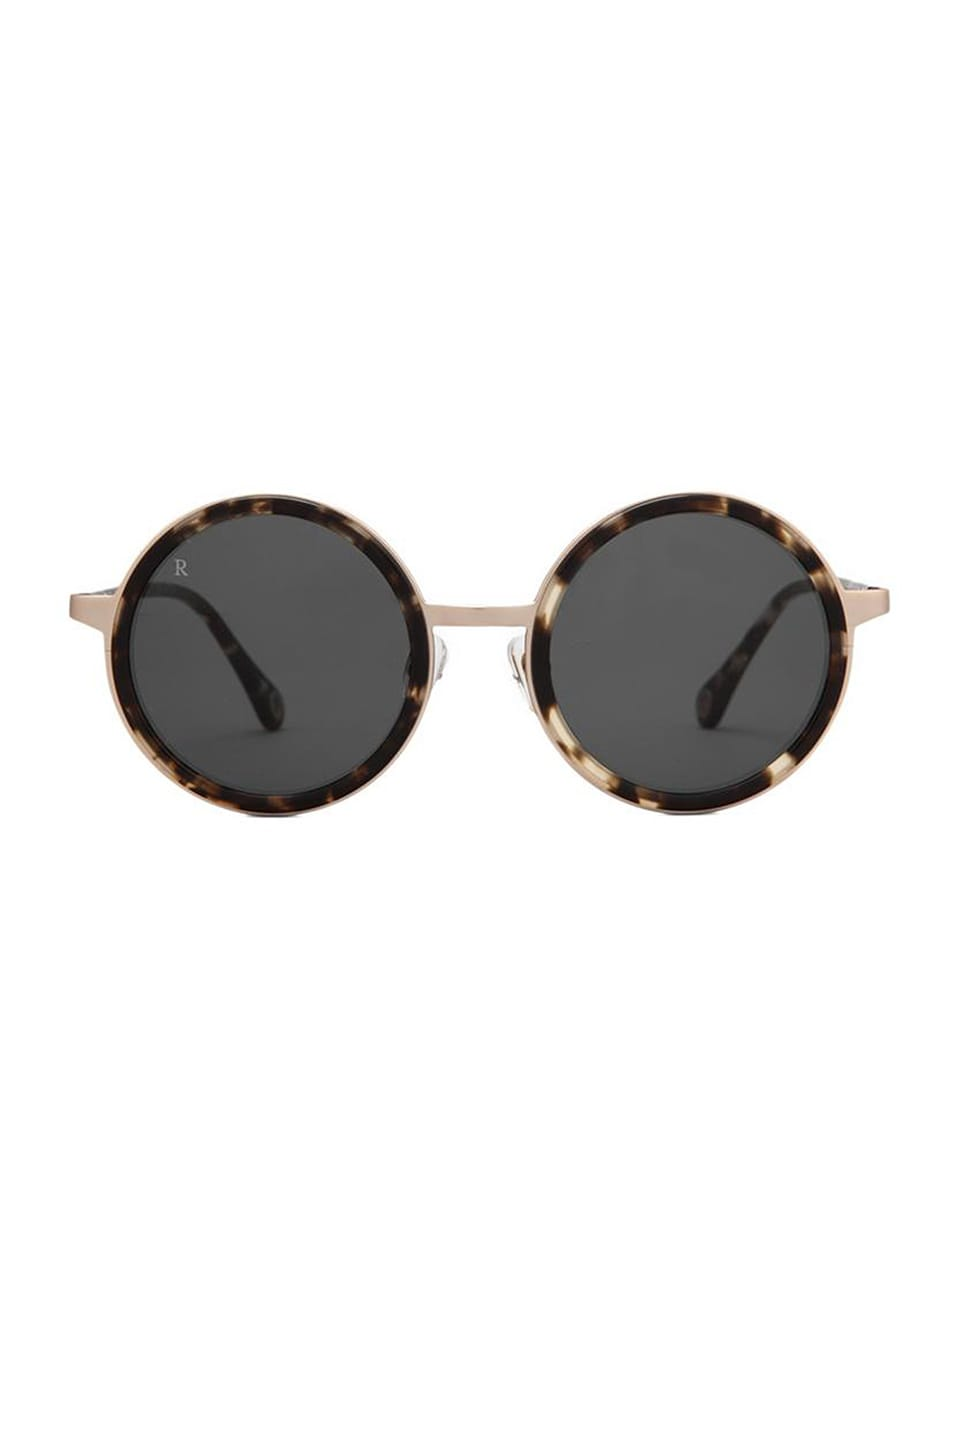 RAEN optics Fairbank Sunglasses in Brindle Tortoise